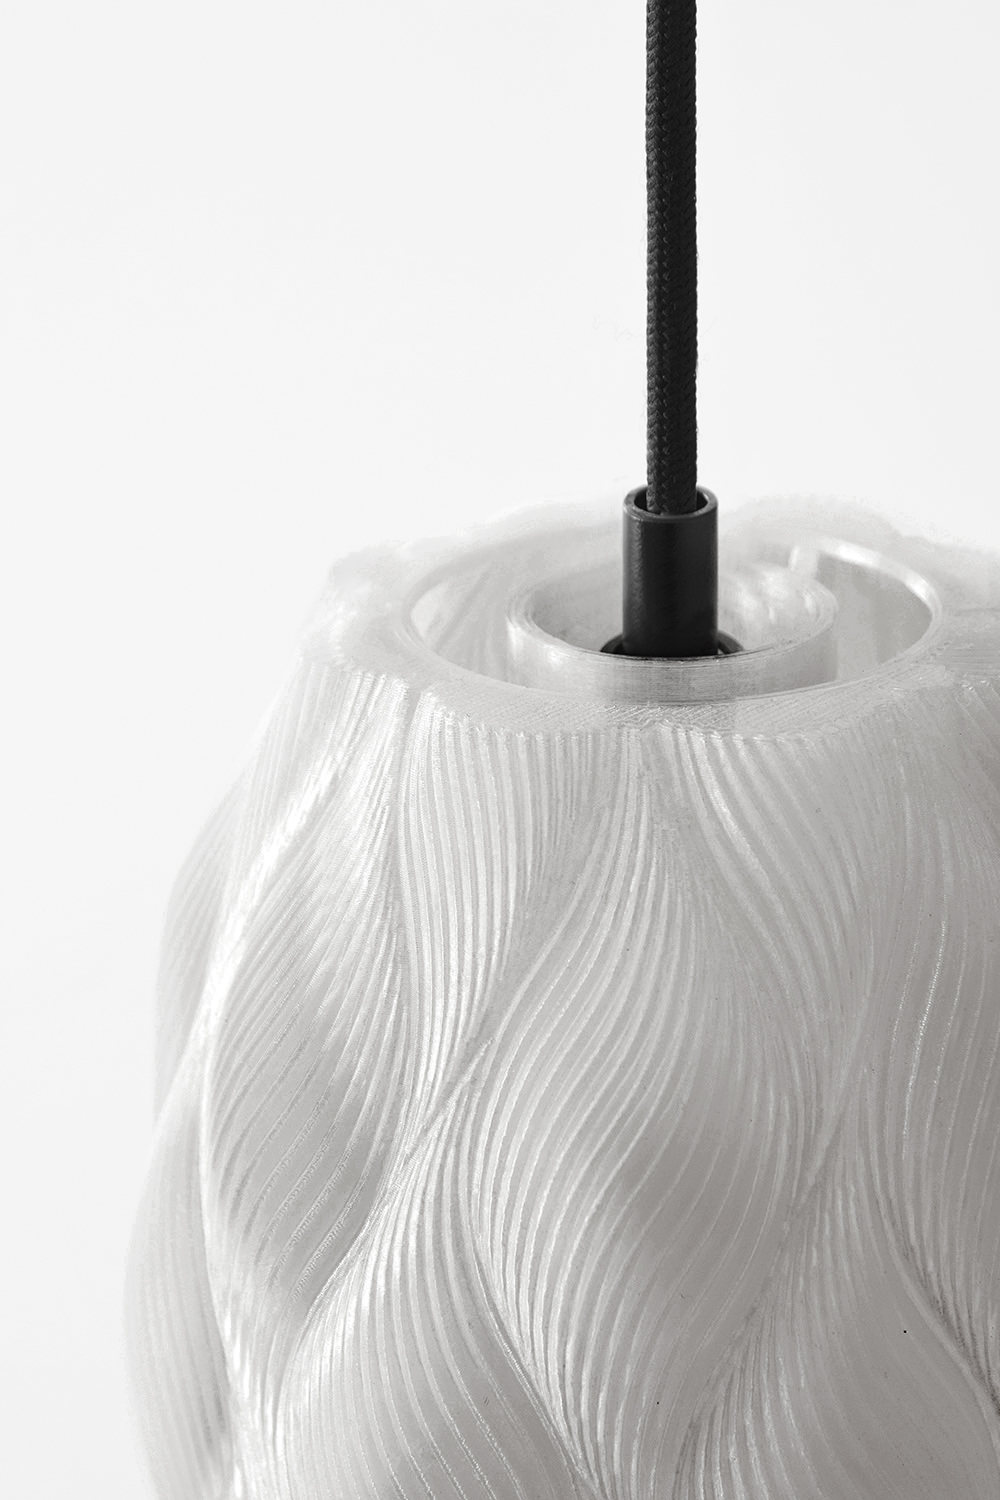 Lamellae Pendant Lamp Detail, Design by Matthijs Kok